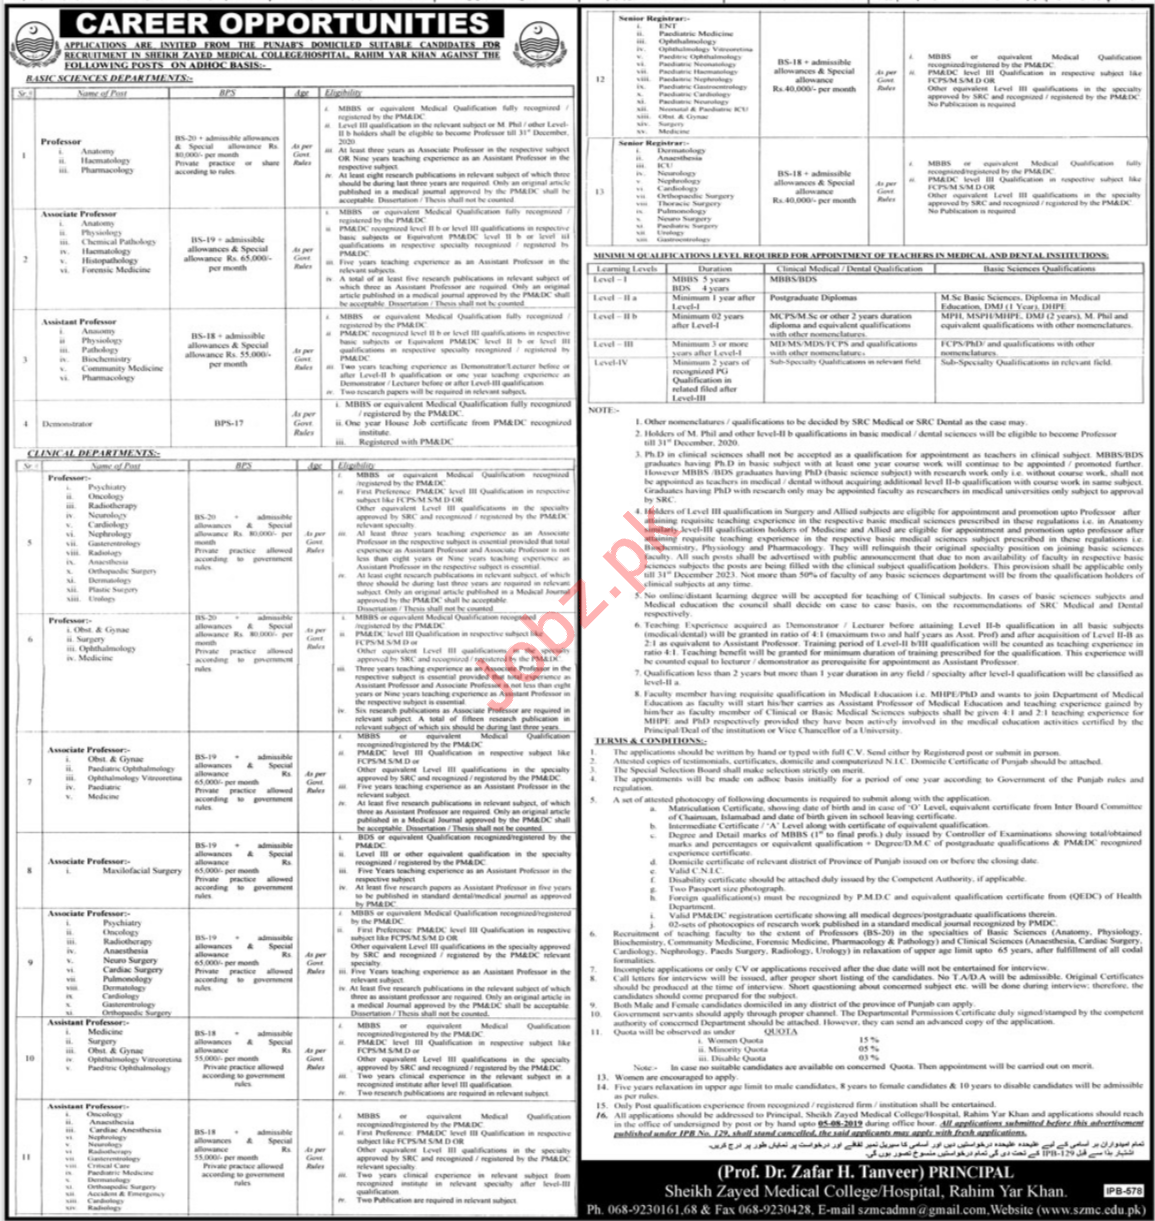 Sheikh Zayed Medical College Hospital Jobs 2019